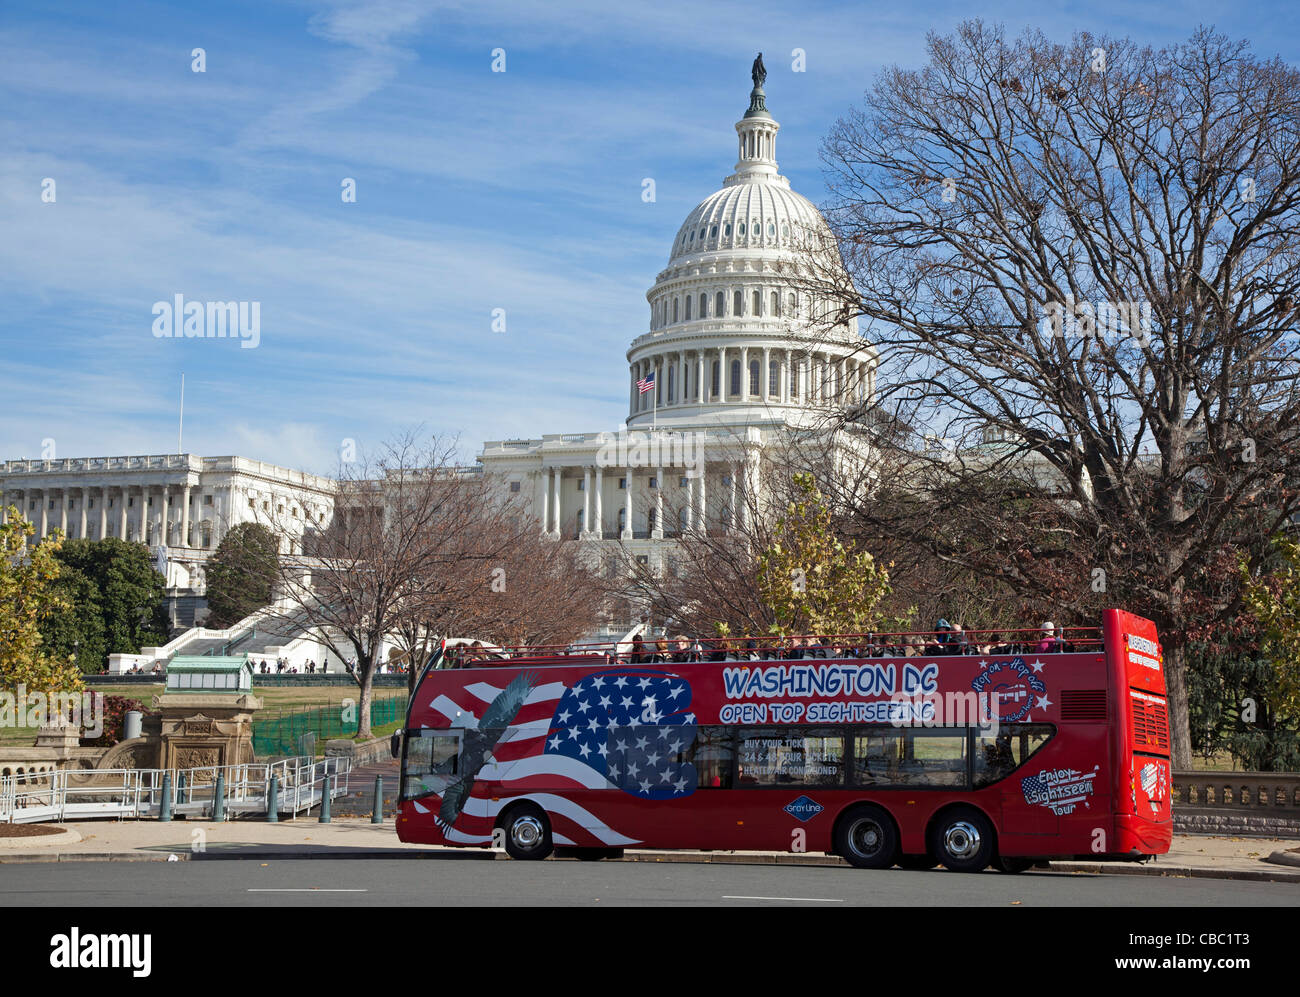 Washington, DC - A sightseeing bus at the U.S. Capitol. - Stock Image